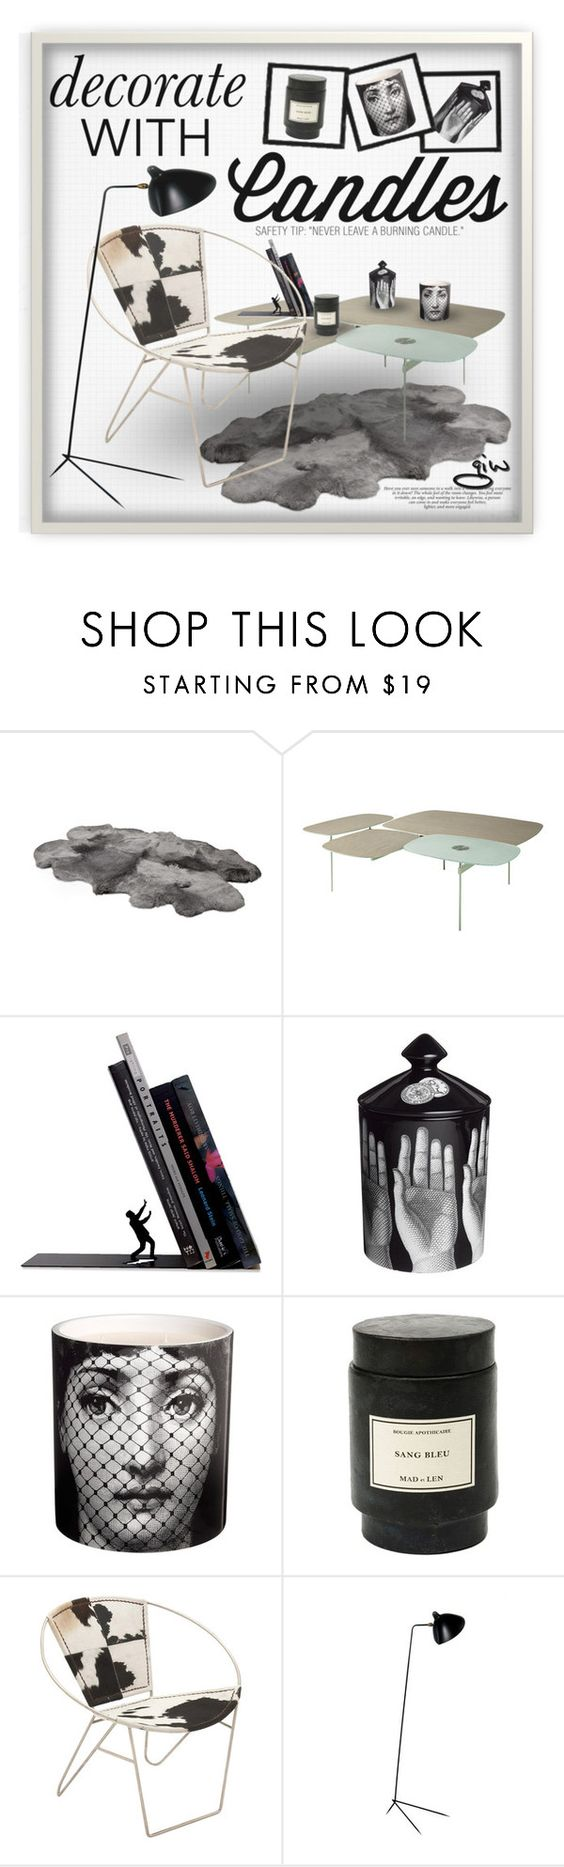 """""""'Burlesque'"""" by ian-giw ❤ liked on Polyvore featuring interior, interiors, interior design, home, home decor, interior decorating, Fornasetti, Mad et Len, Dot & Bo and Serge Mouille"""